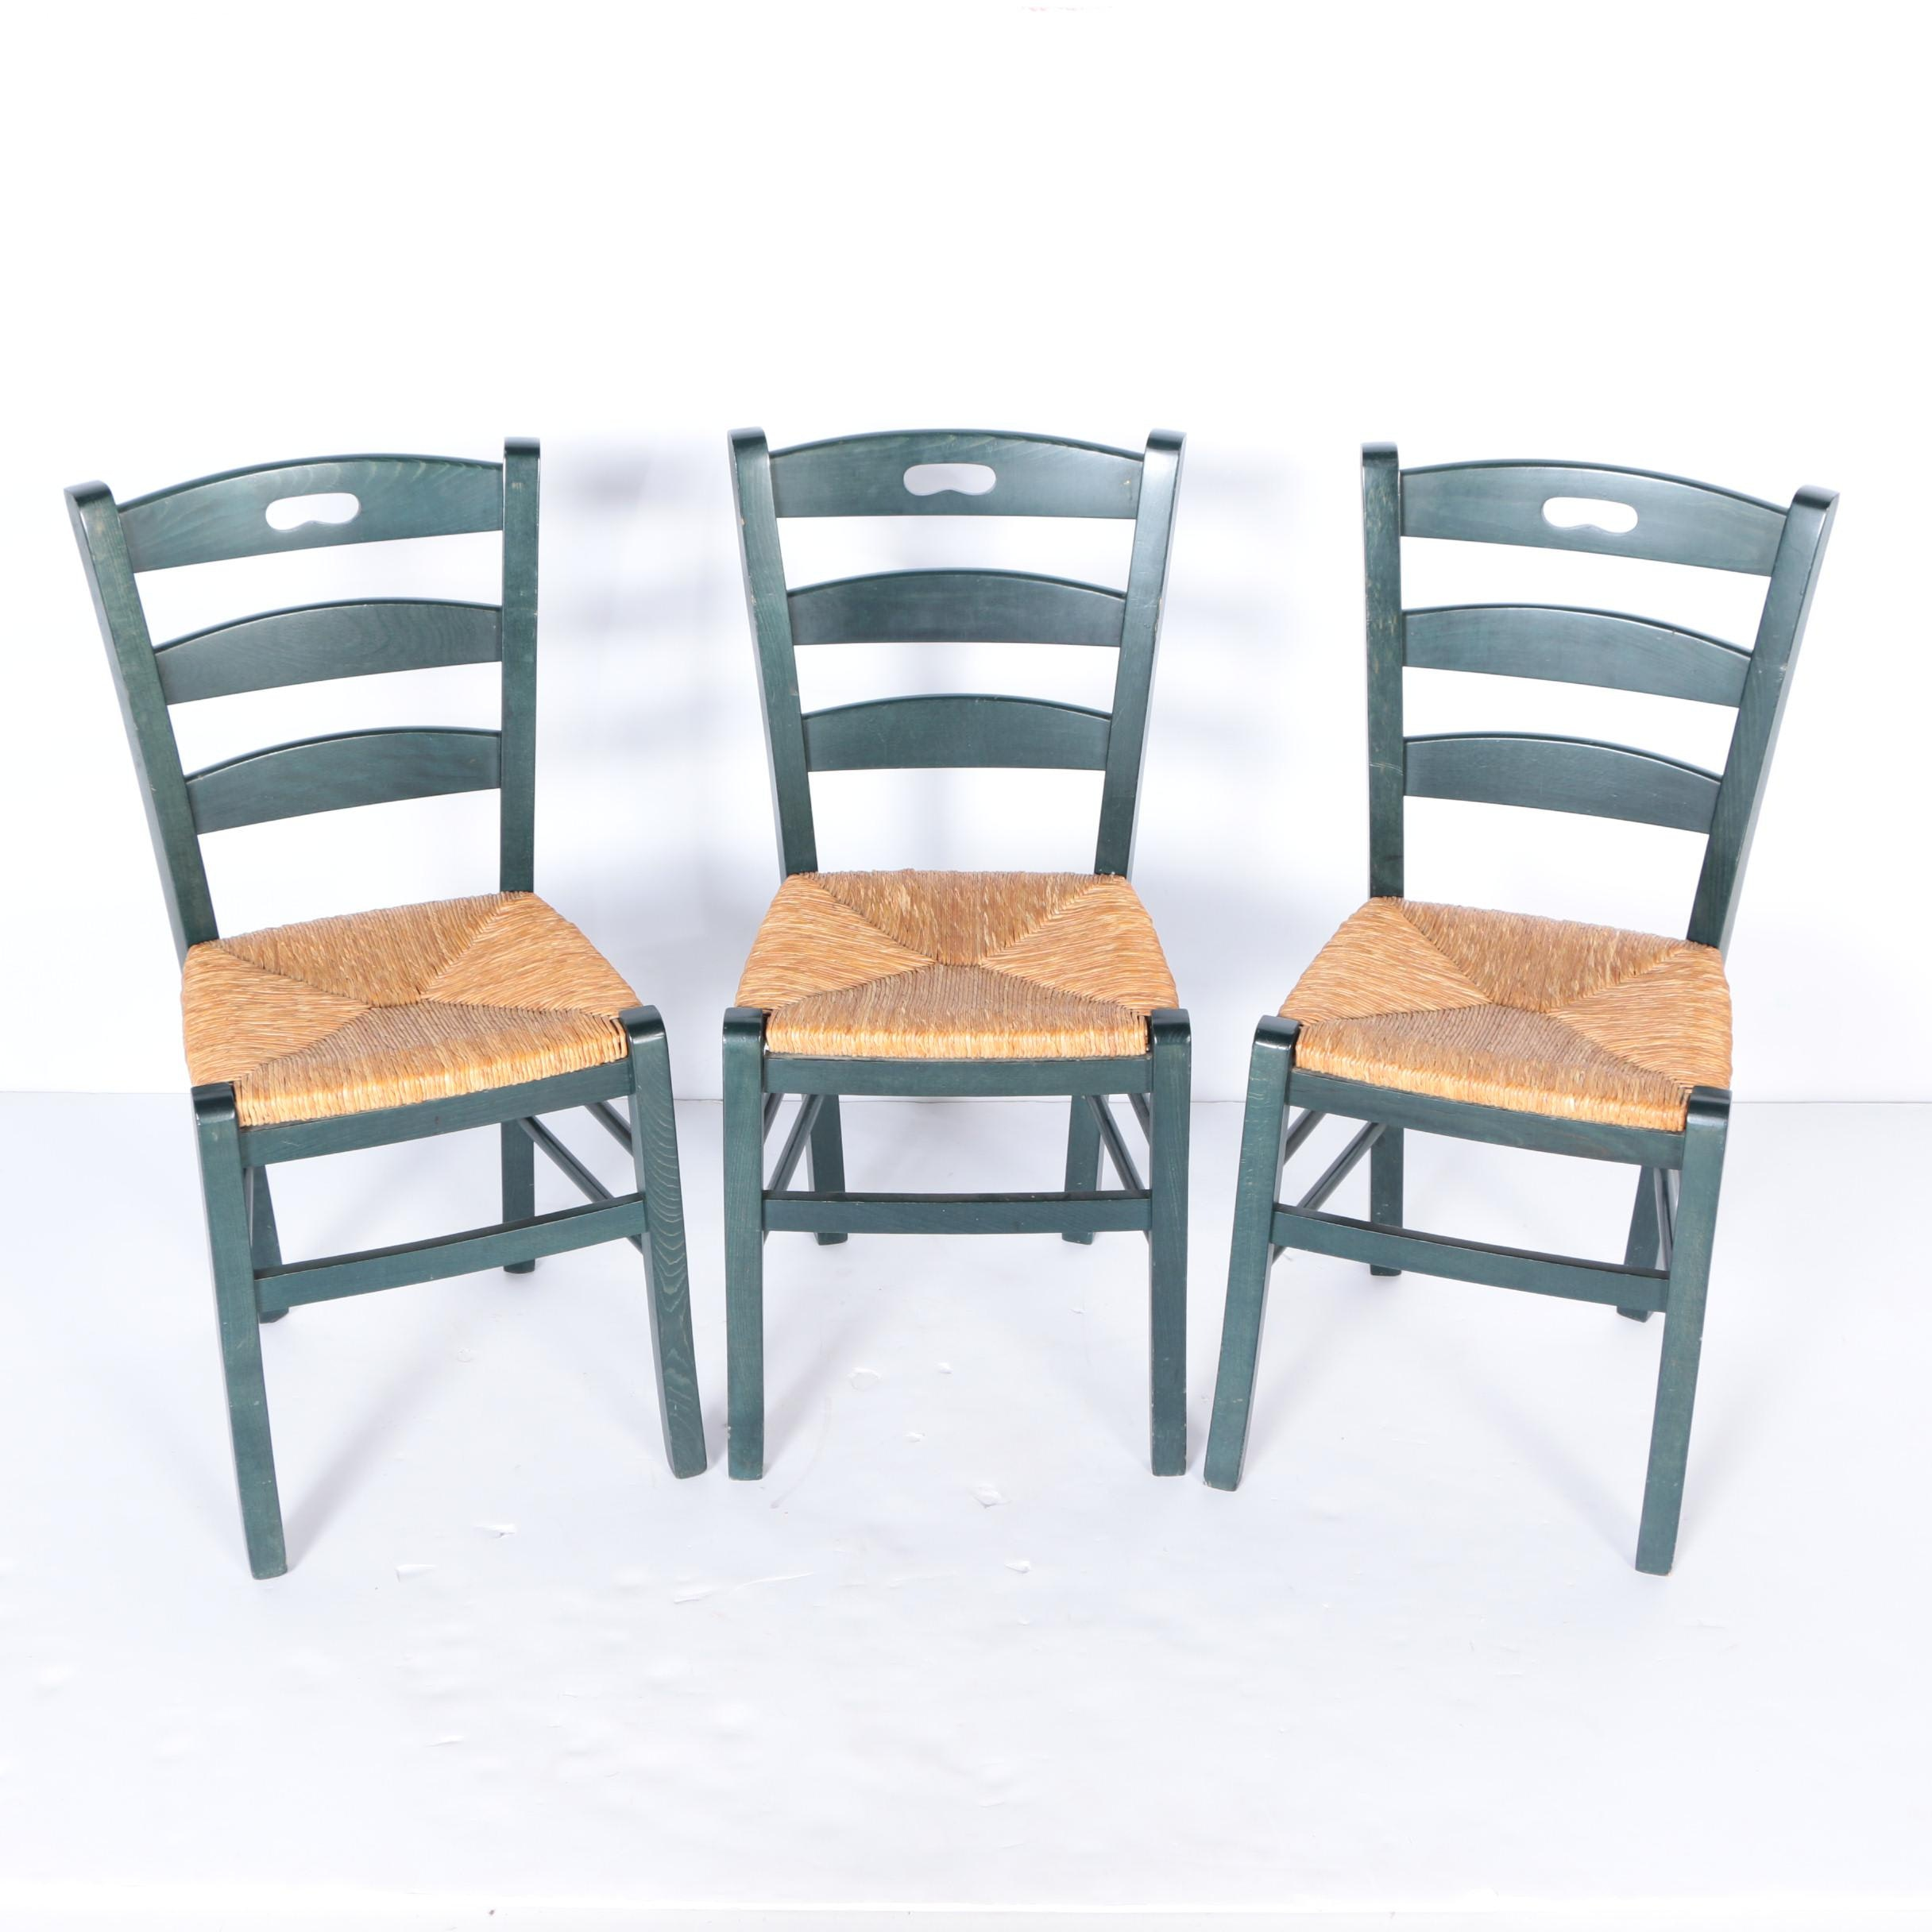 Merveilleux Set Of Three Pottery Barn Ladder Back Chairs With Rush Seats ...